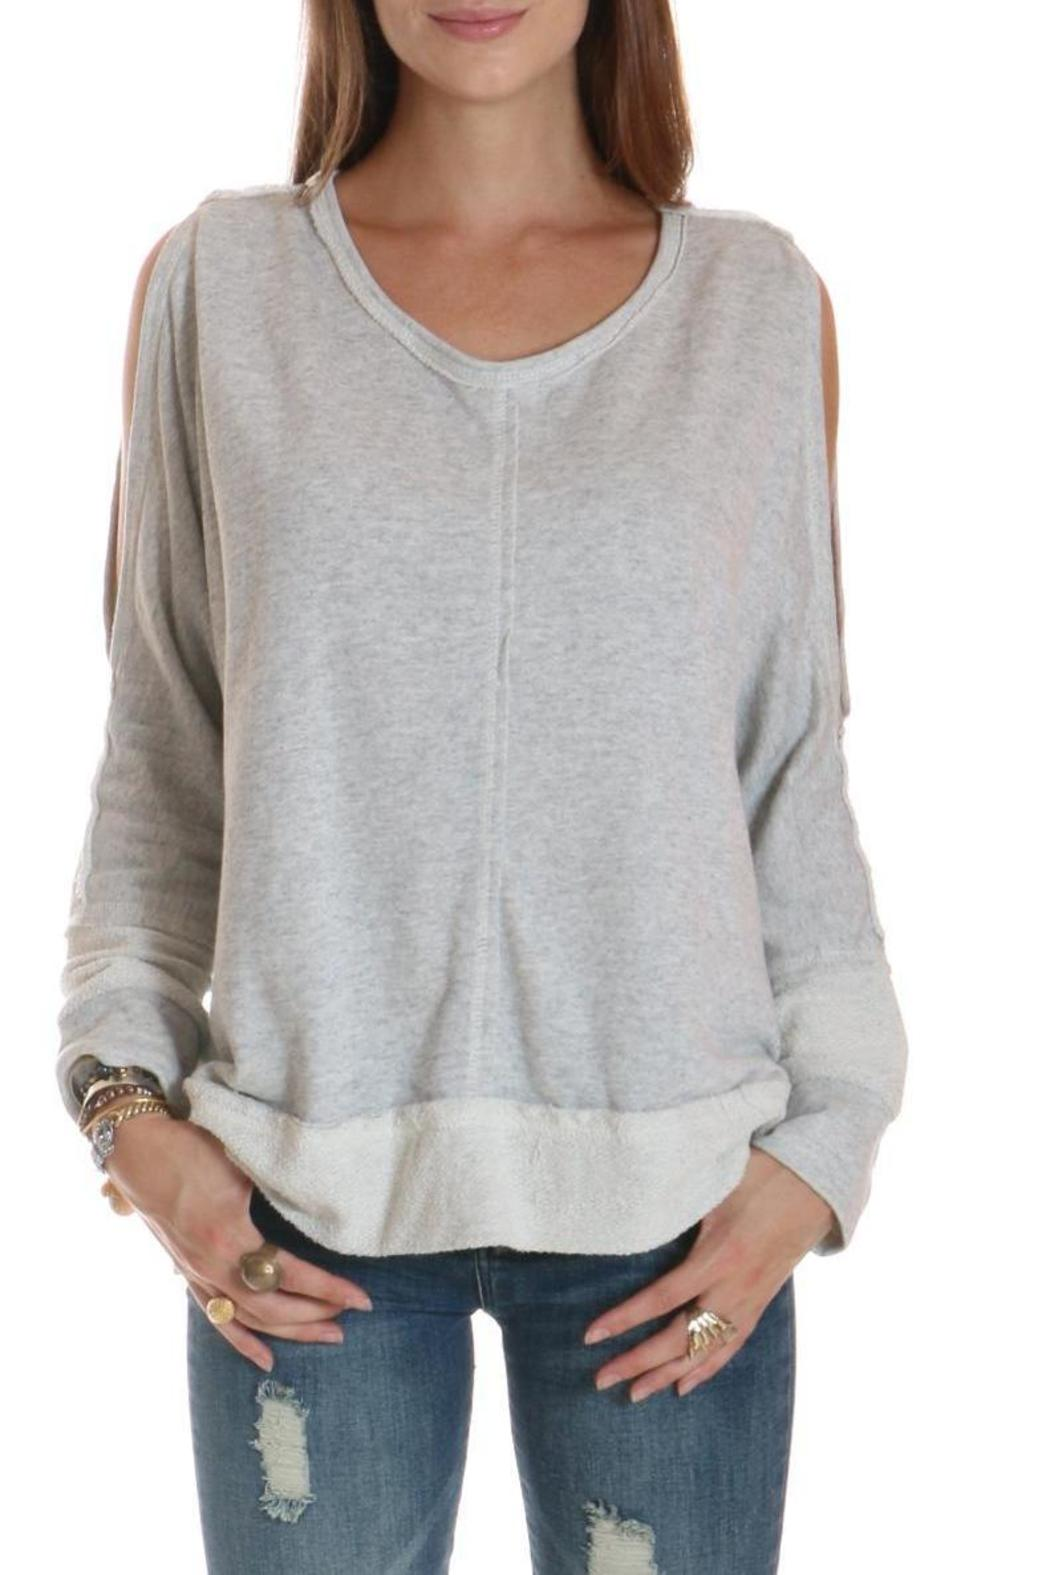 30197c97ef0ab Elan Cold Shoulder Sweatshirt from New York by Love